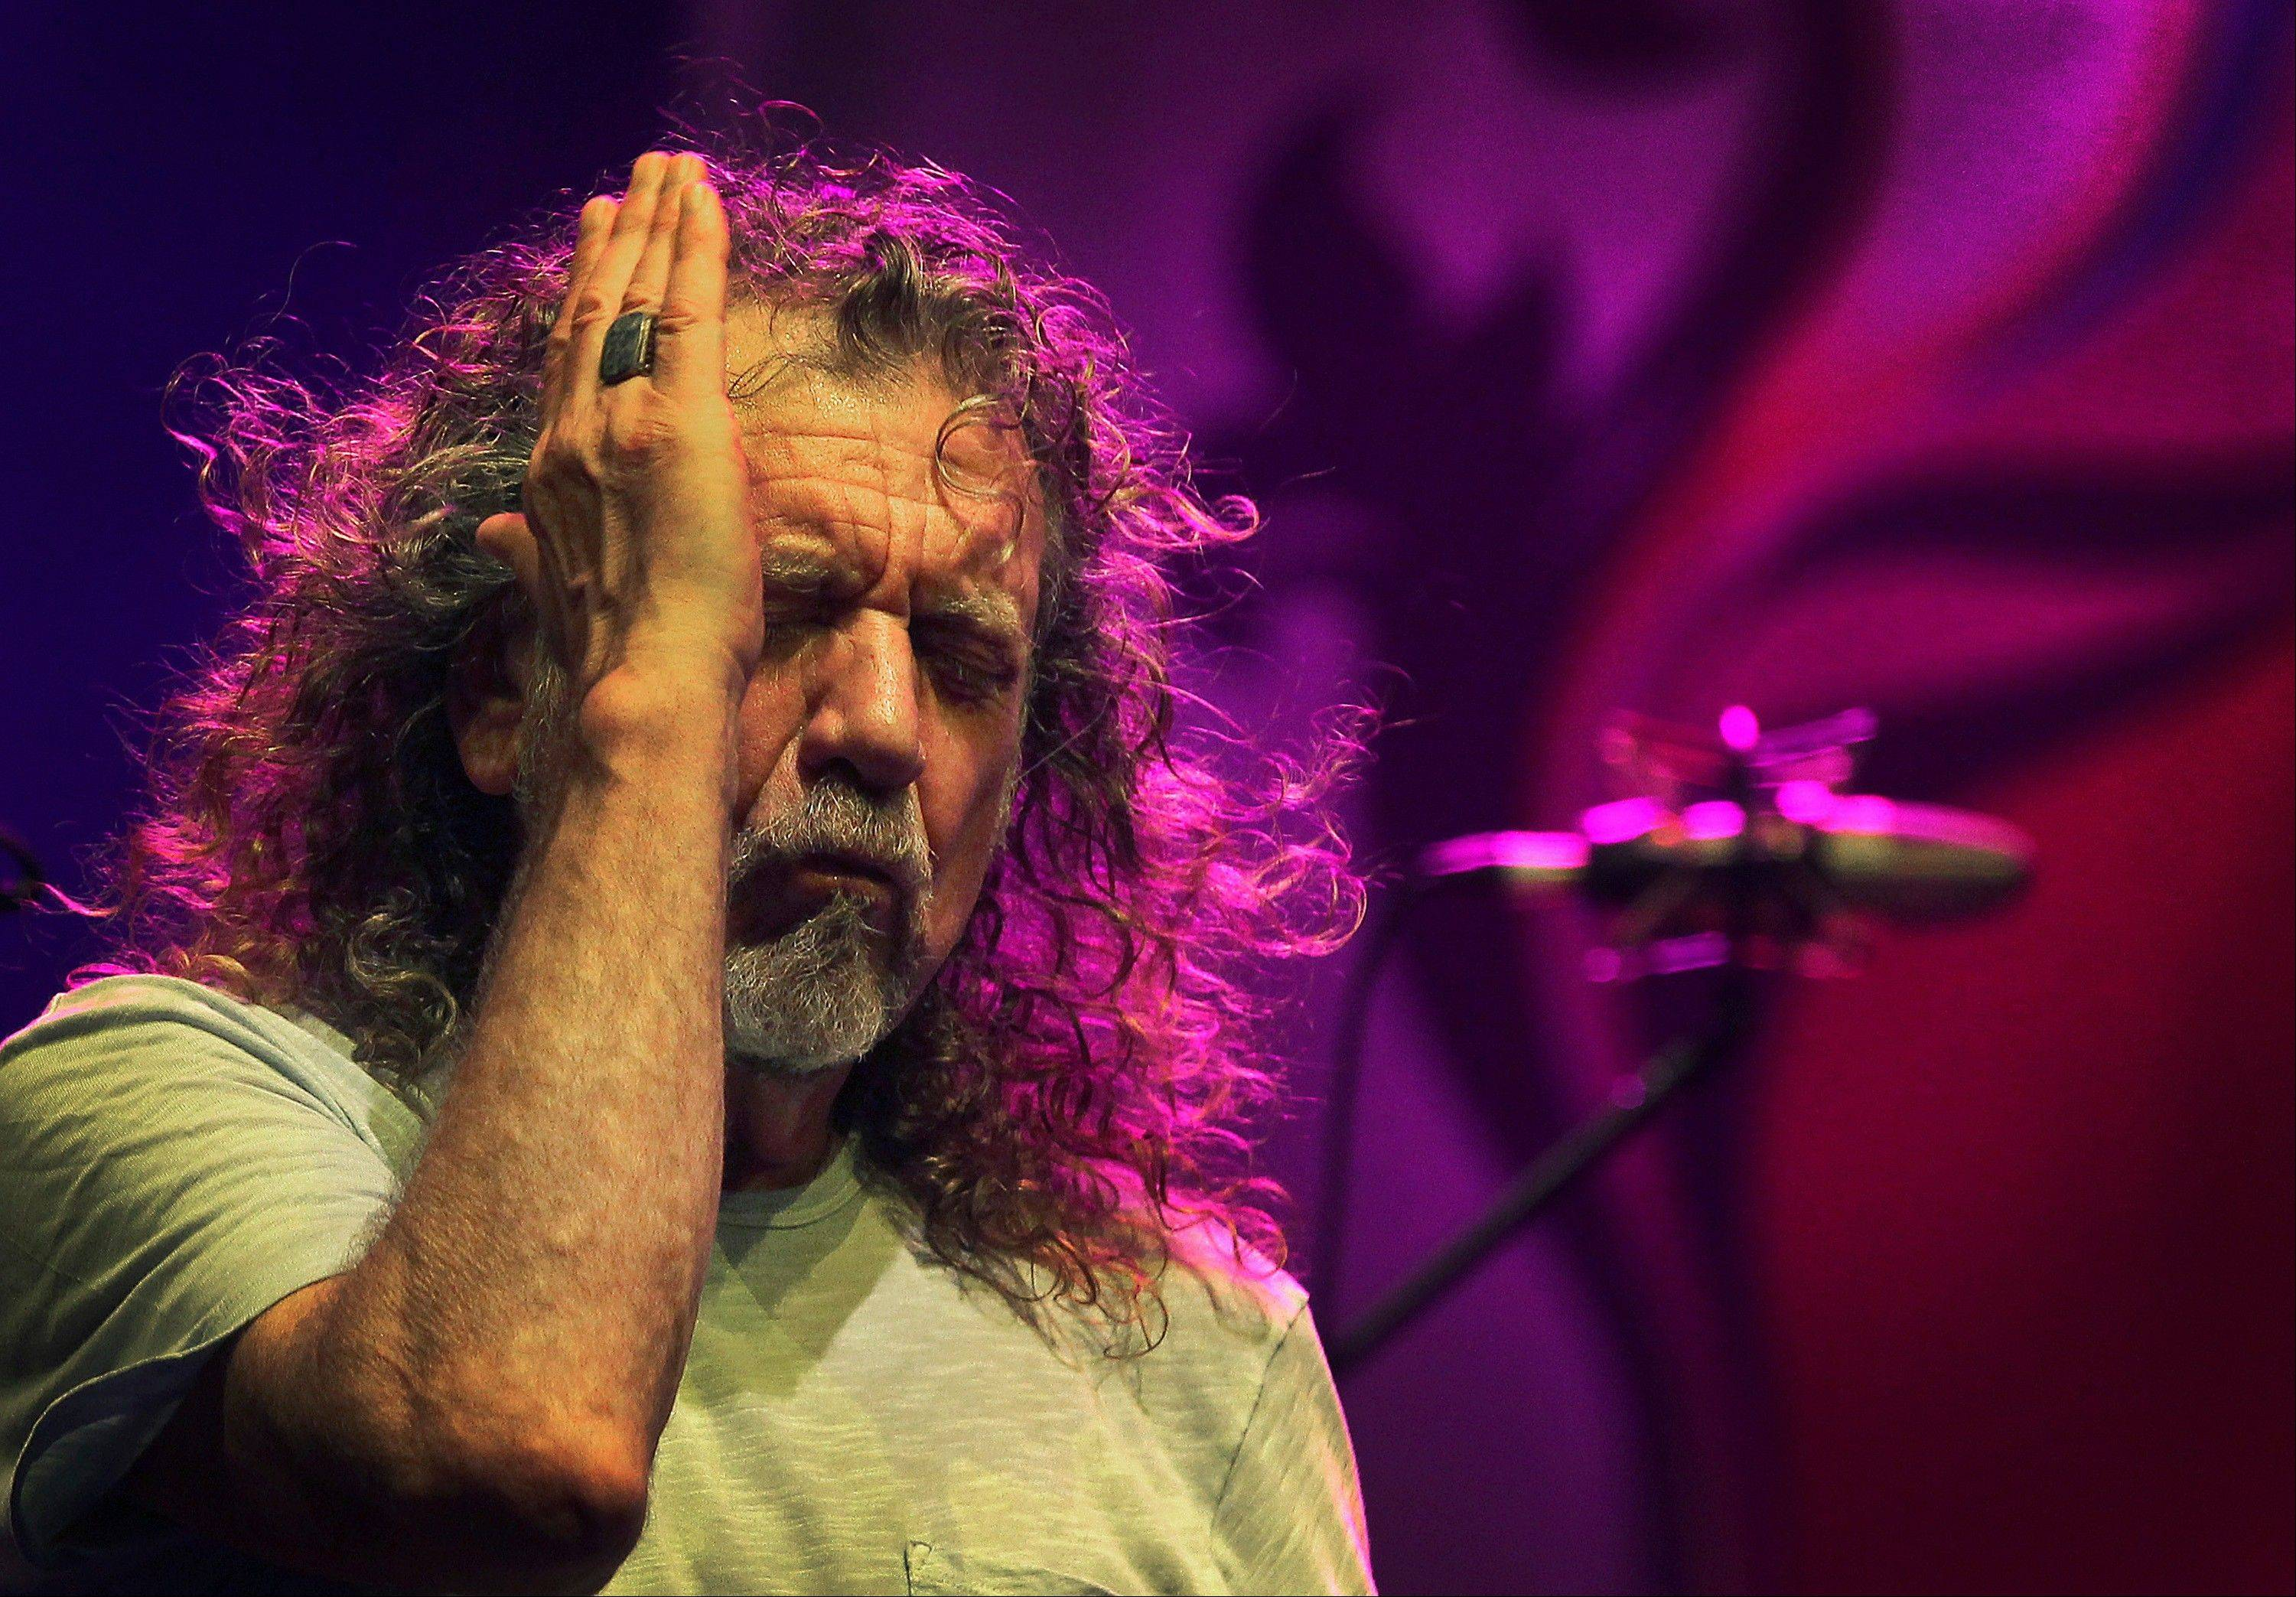 Robert Plant has rejiggered Led Zeppelin songs a bit to keeps them fresh.